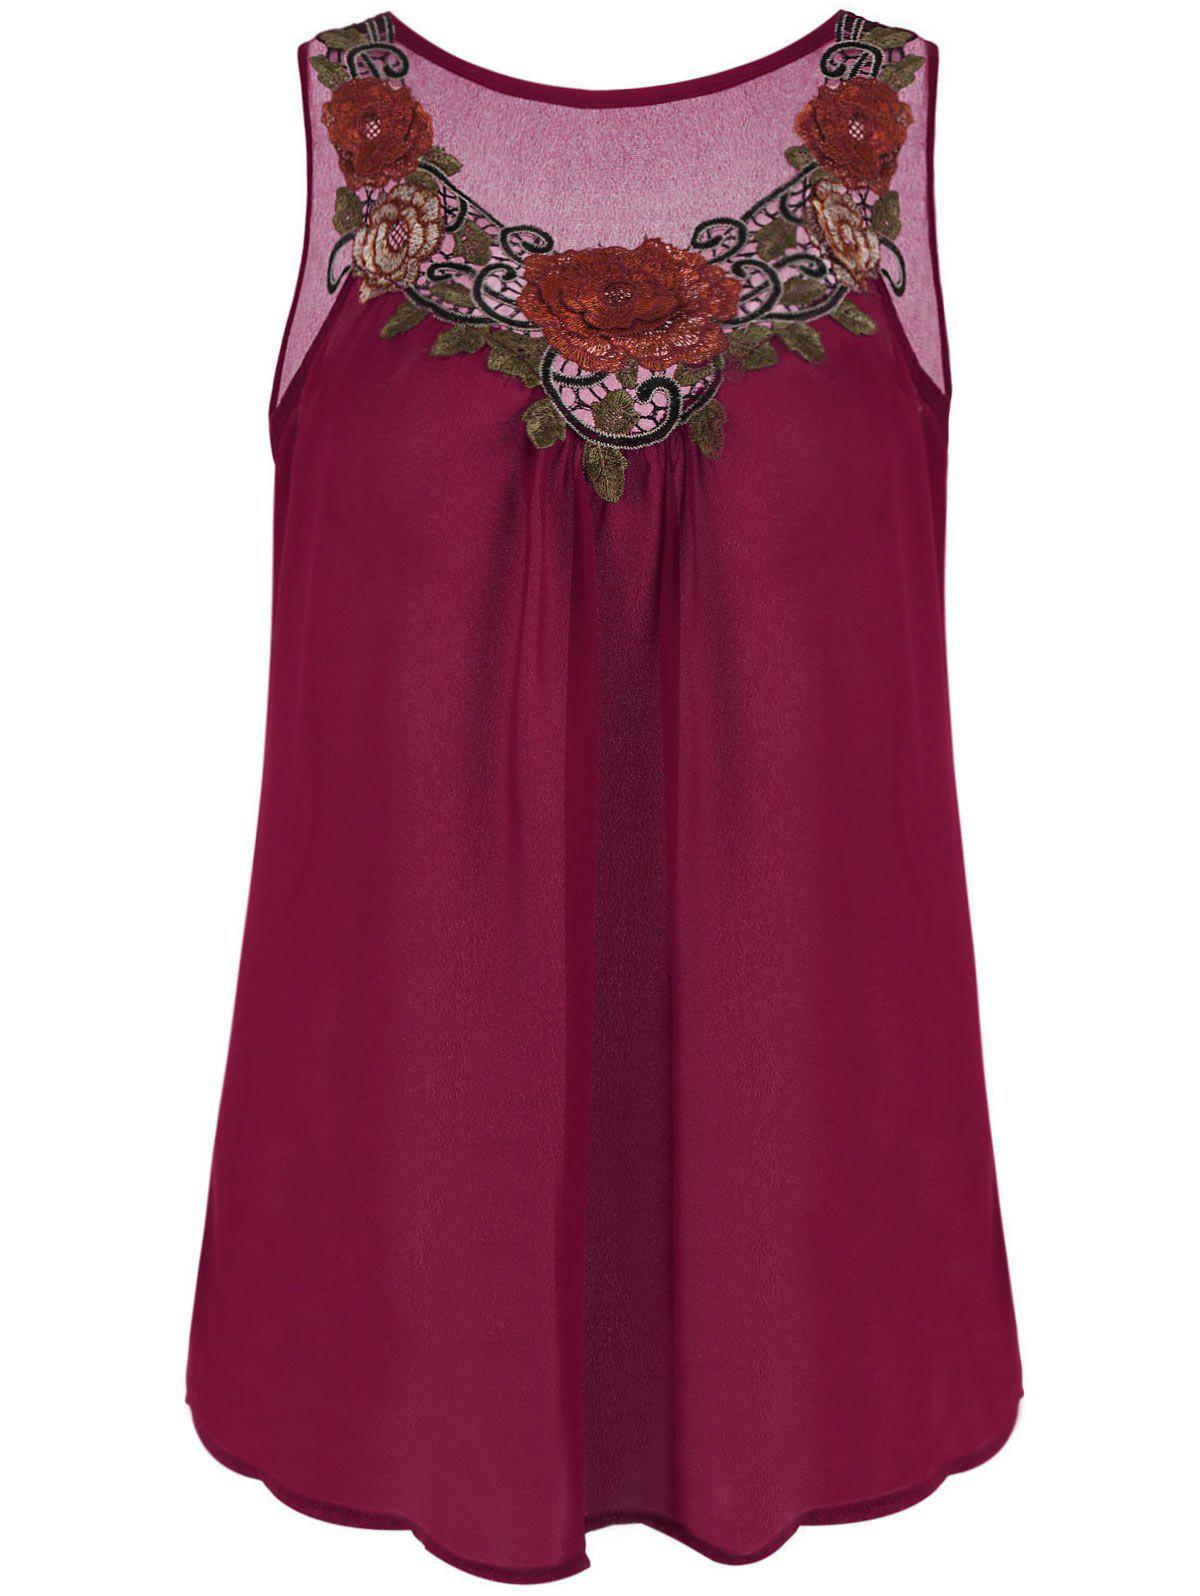 Embroidered Sleeveless Plus Size Chiffon TopWOMEN<br><br>Size: 4XL; Color: WINE RED; Material: Polyester; Shirt Length: Regular; Sleeve Length: Sleeveless; Collar: Round Neck; Style: Fashion; Season: Summer; Pattern Type: Floral; Weight: 0.1500kg; Package Contents: 1 x Top;